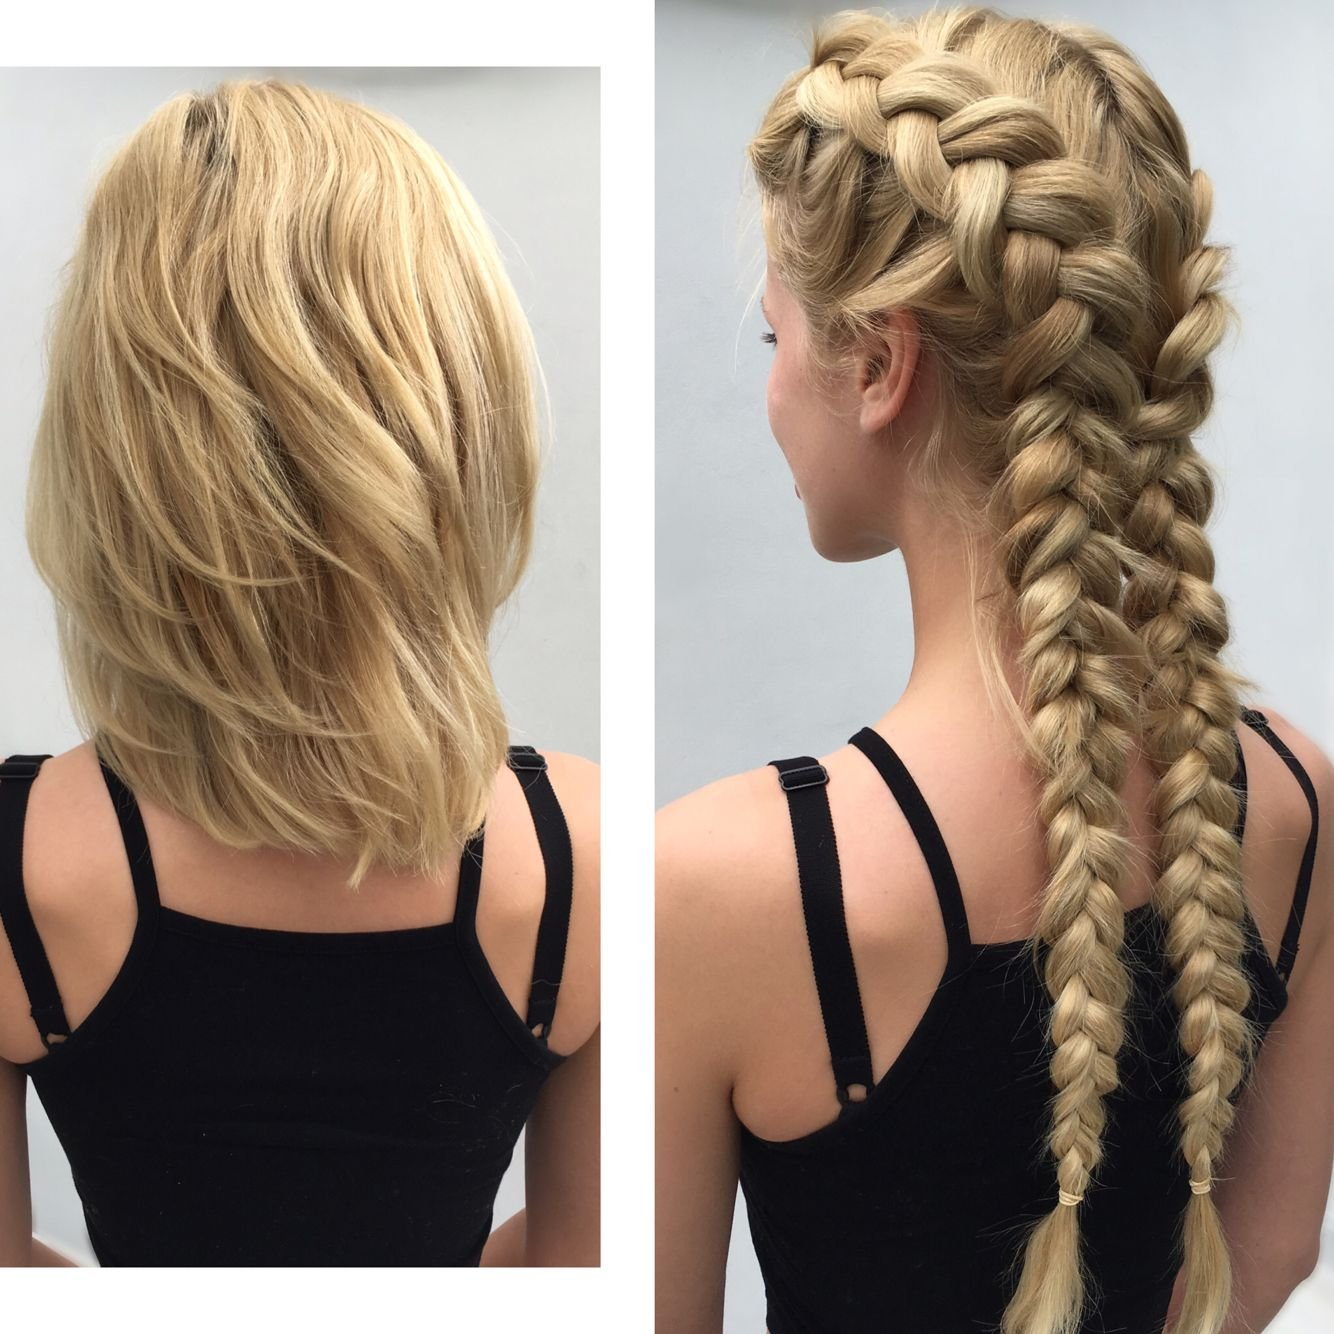 Boxer Braids Clip In Braids Hair Extensions By Tatiana Karelina Boxer Braids Hairstyles Braids With Extensions Braid In Hair Extensions